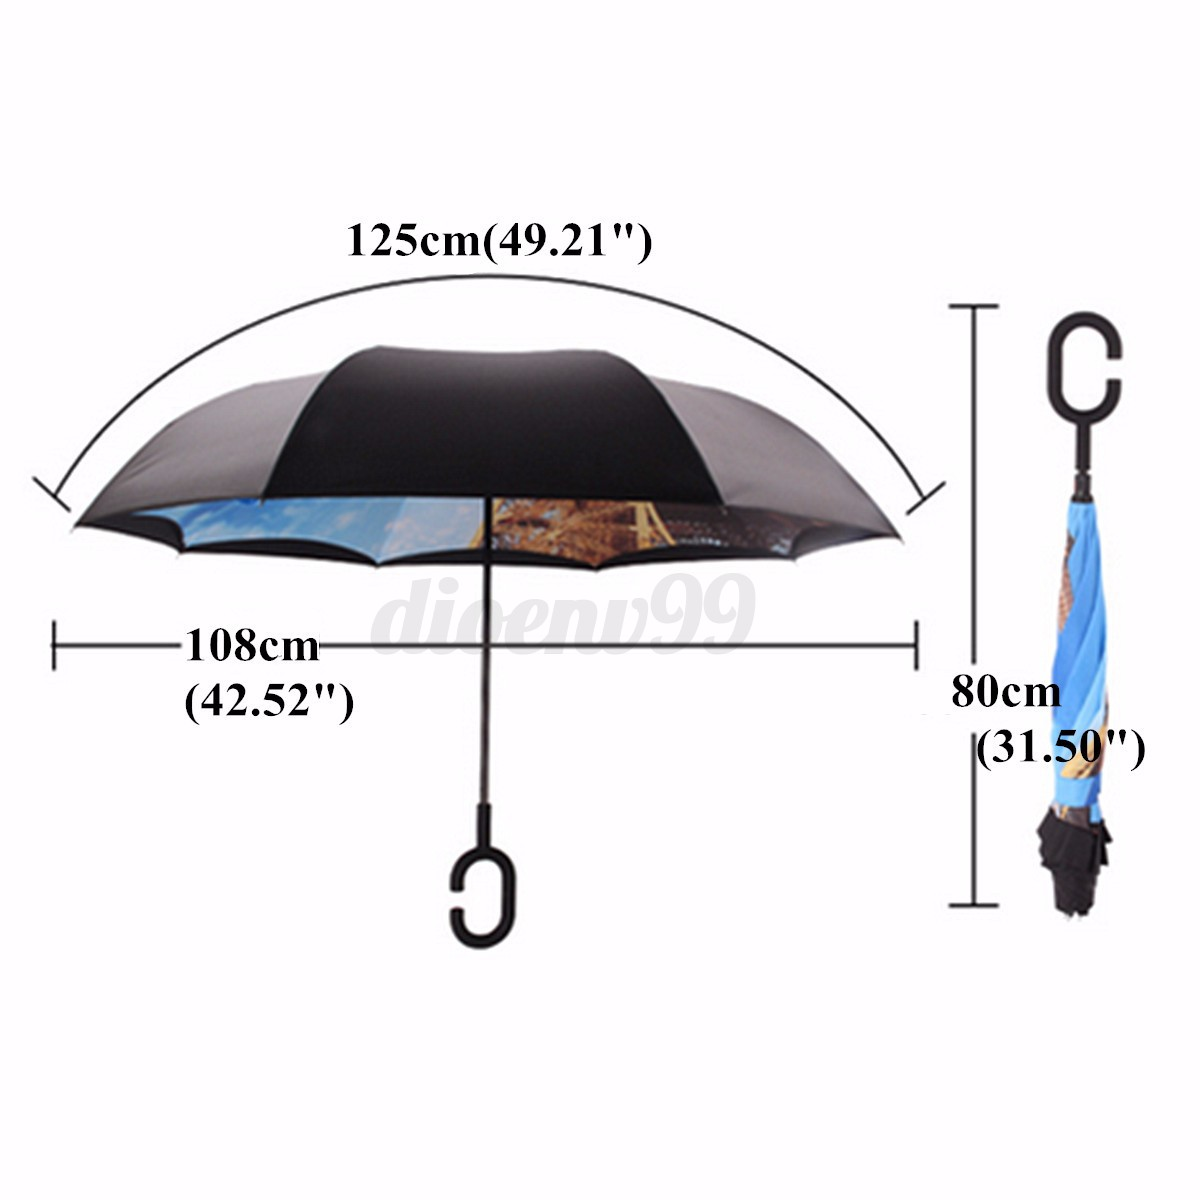 Gardenia Flower Delivery Upside Down Double Layer Inverted Umbrella Reverse C J